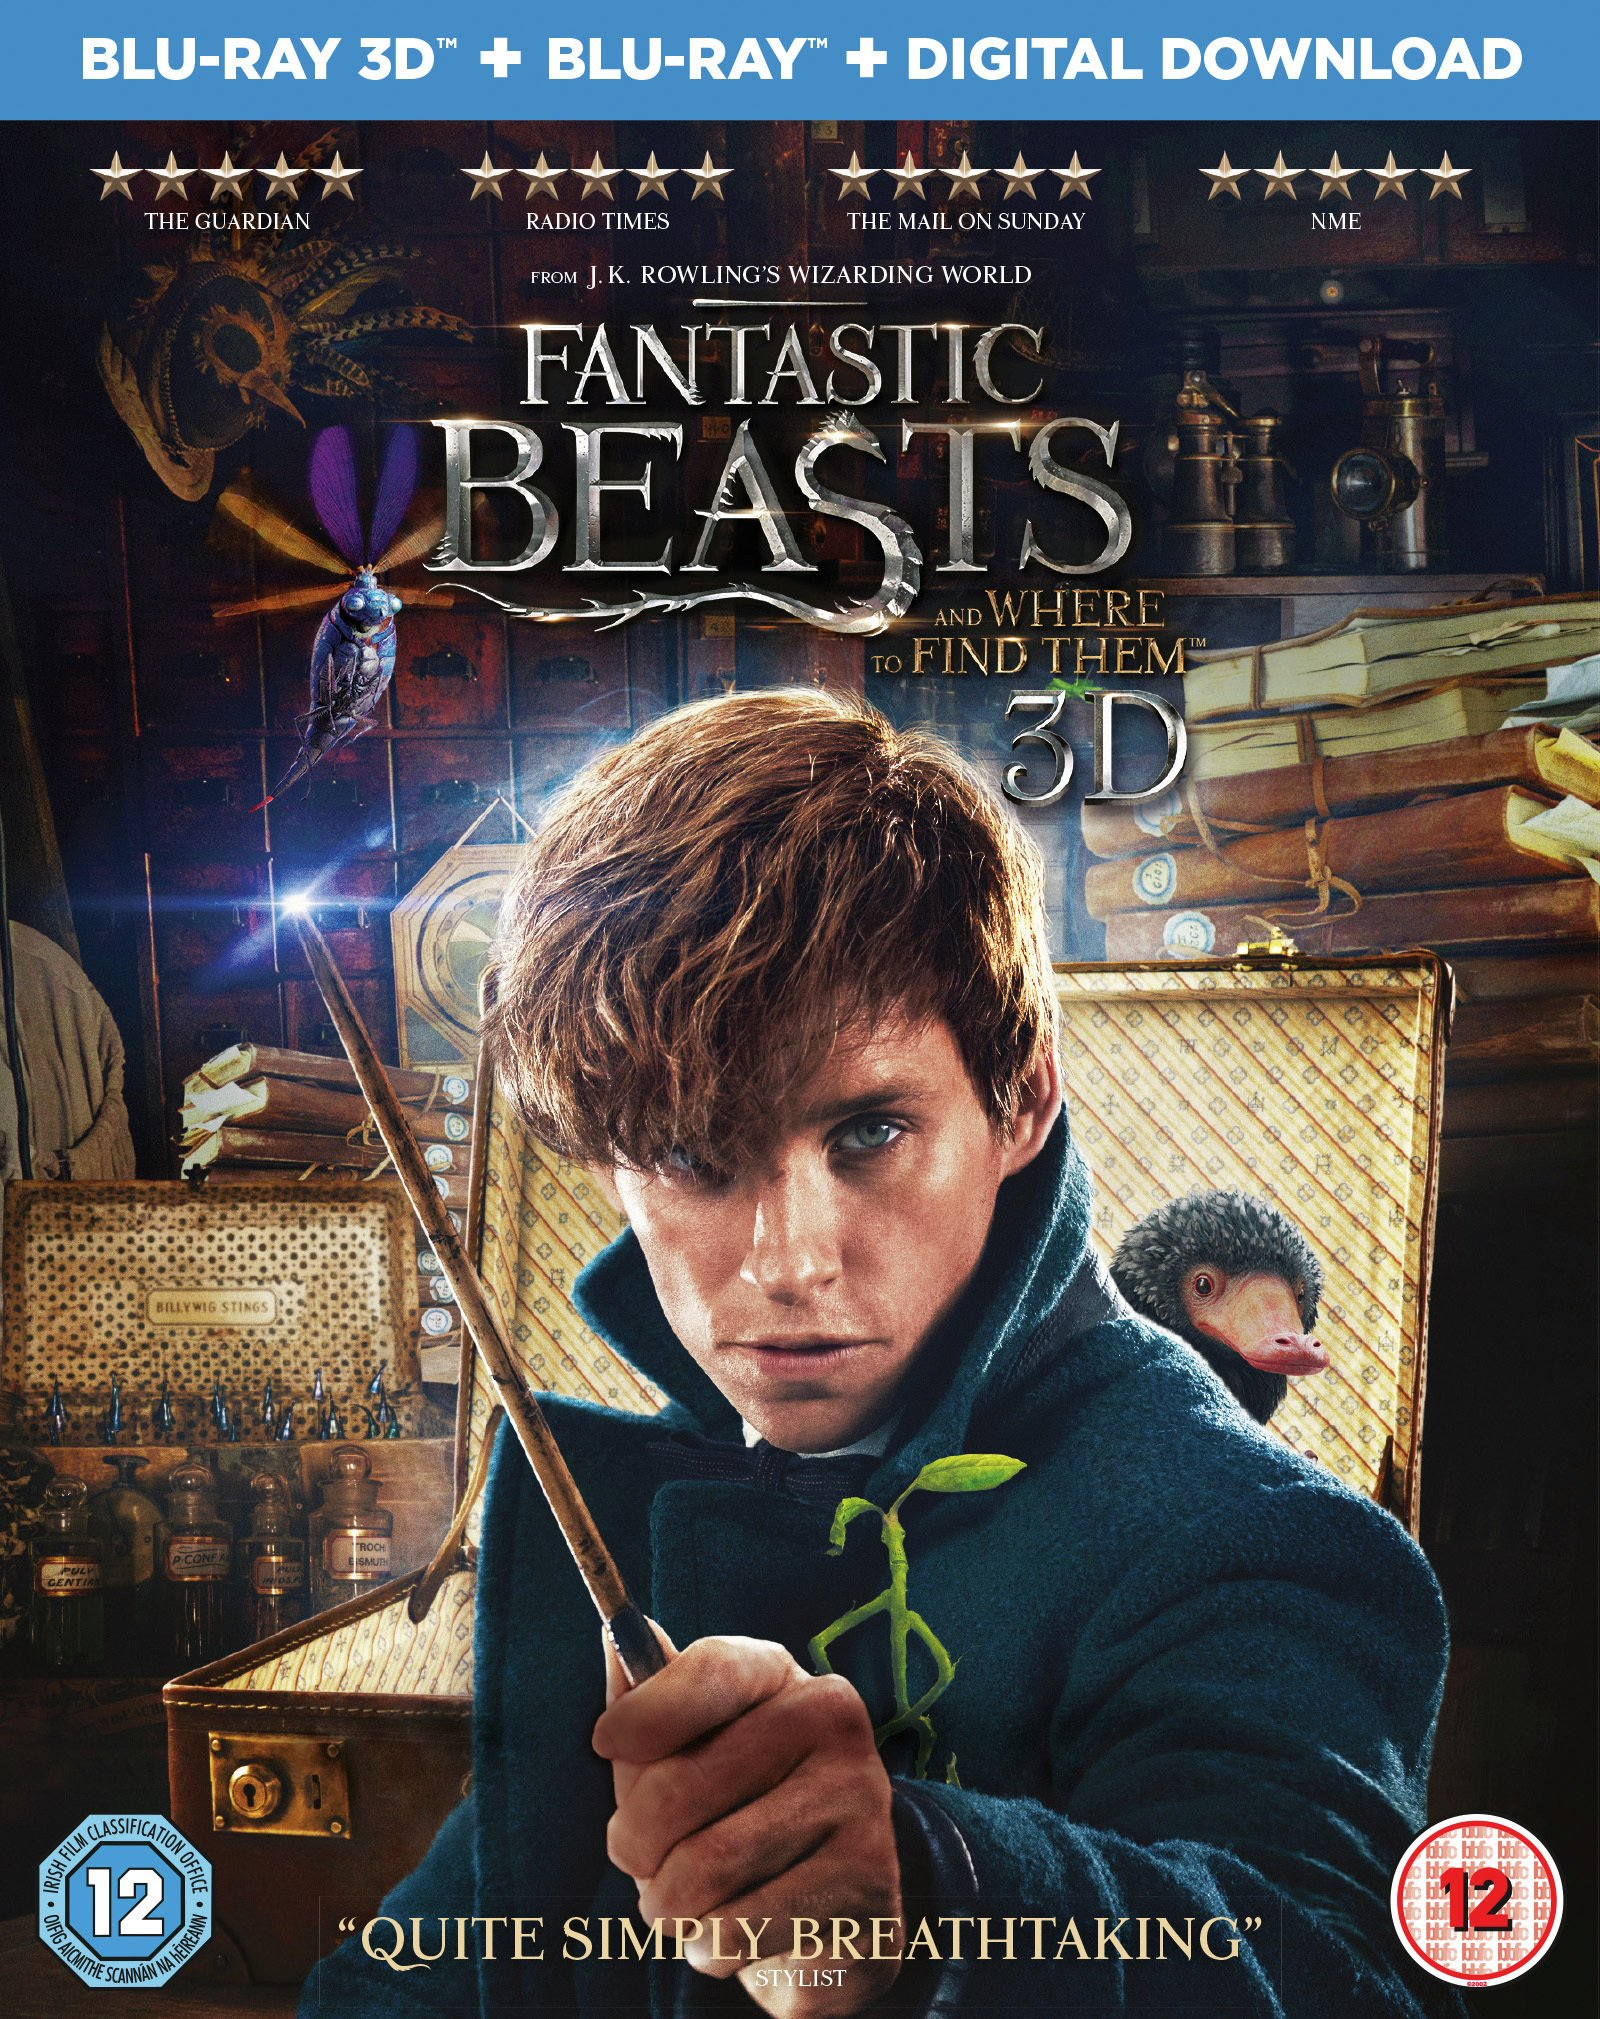 Fantastic Beasts and Where to Find Them 3D DVD.